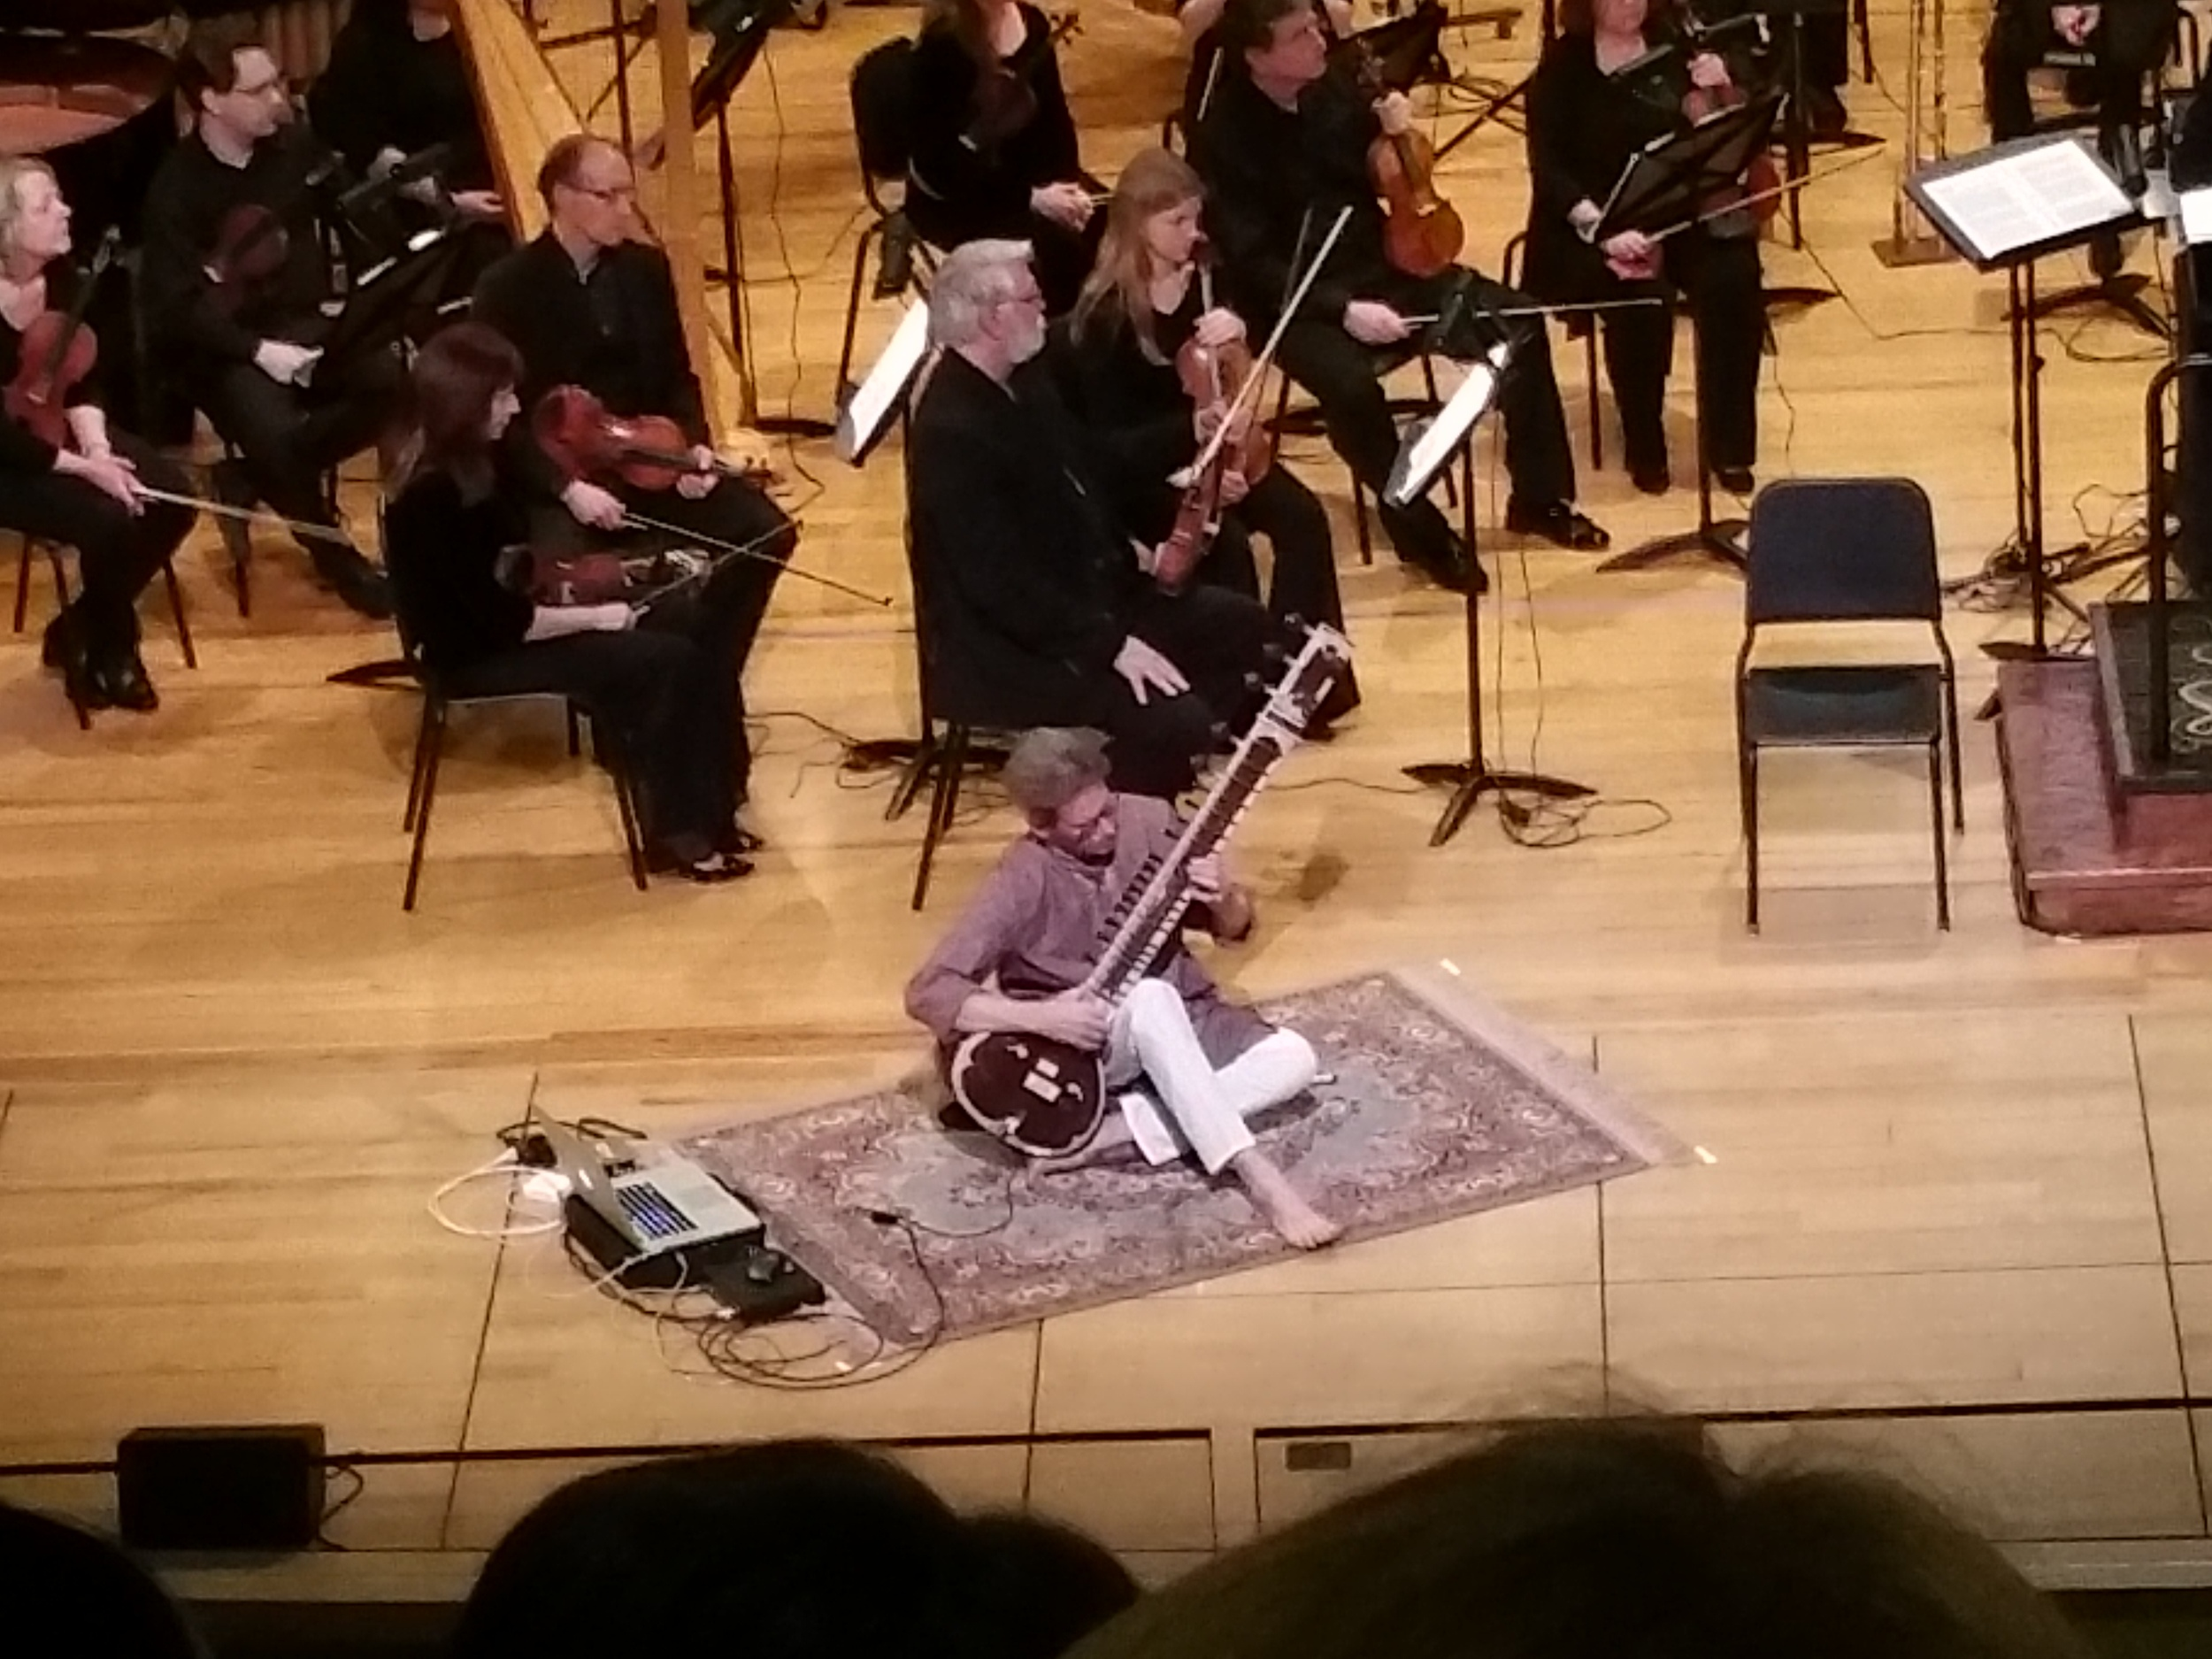 Schrott Center for the Arts, Butler University, Indianapolis, IN - April 15 2016